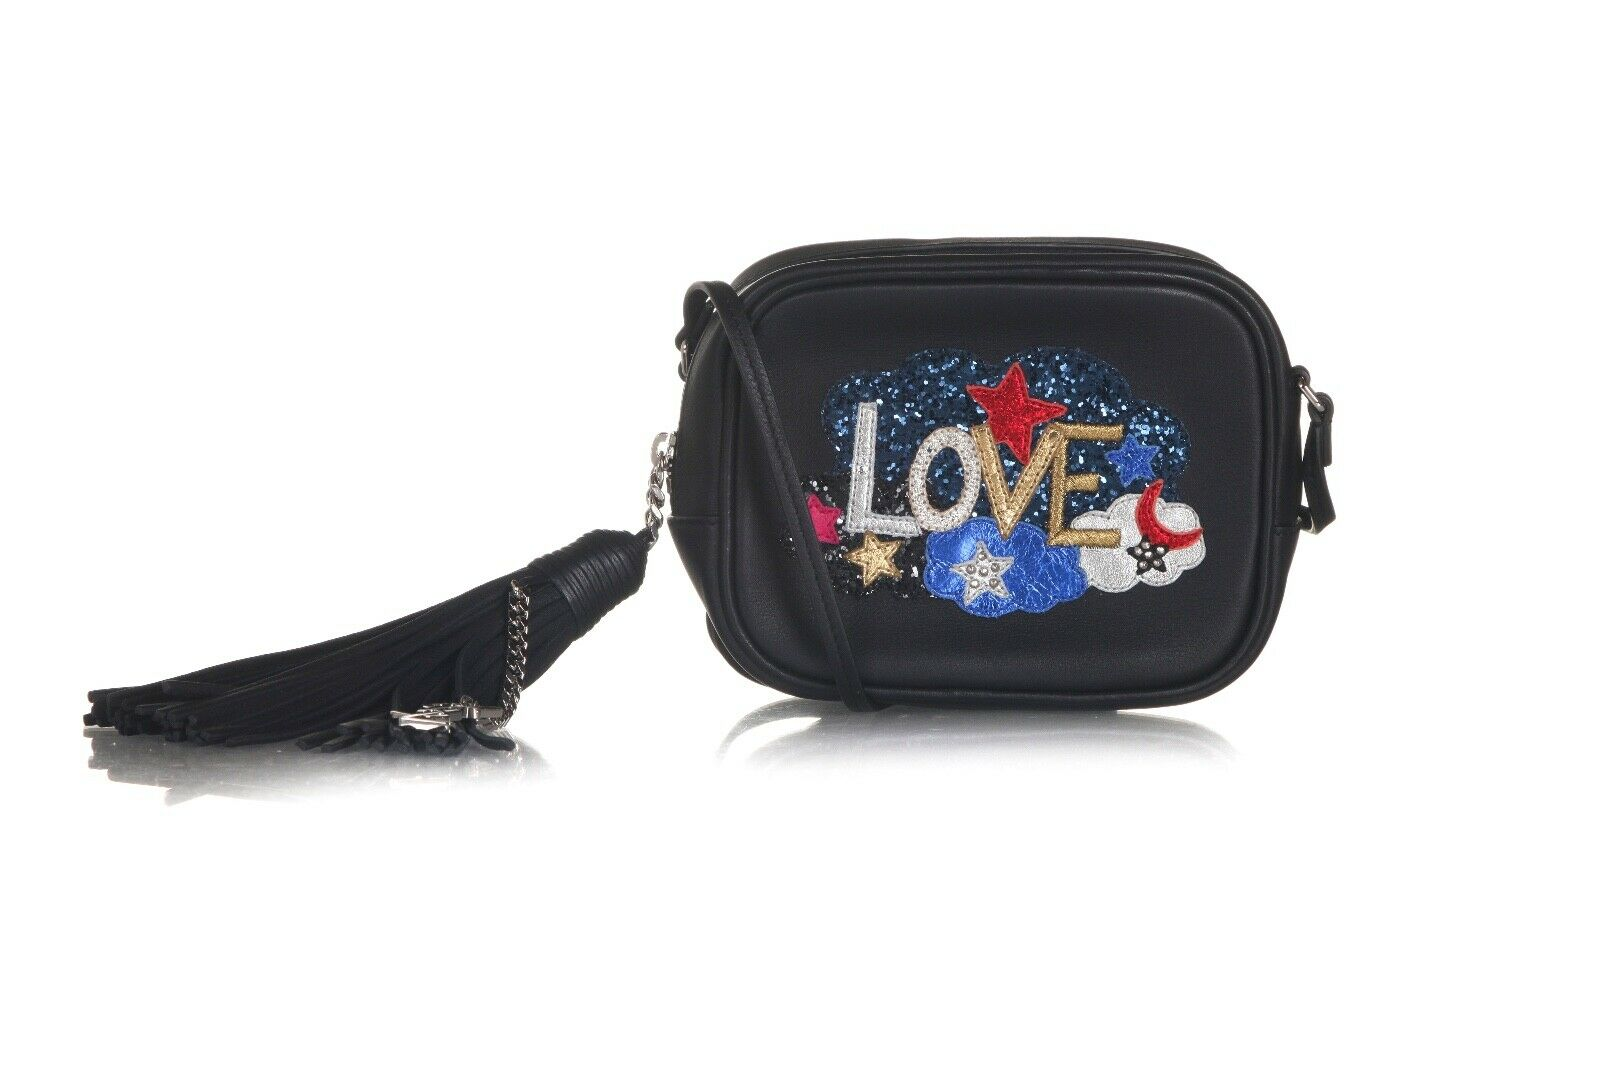 SAINT LAURENT Love Sequin Patchwork Blogger Bag (New)